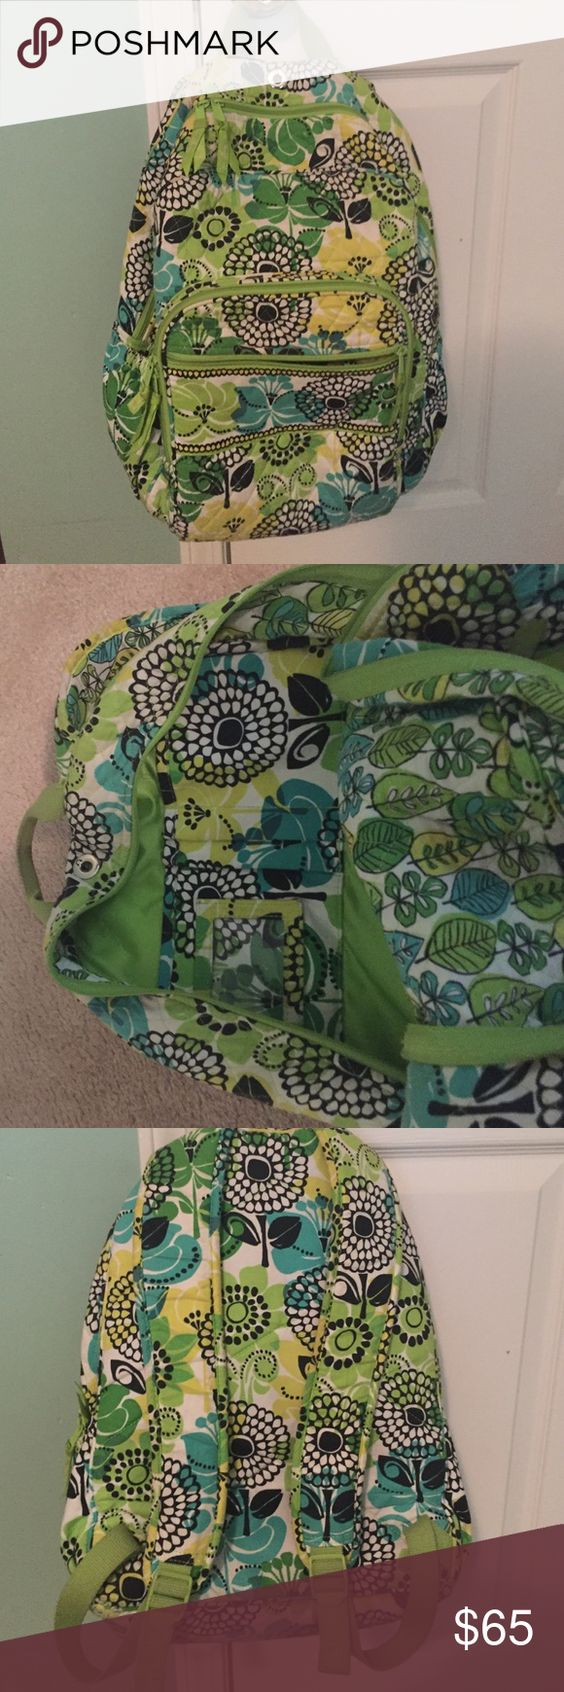 Vera Bradley 3 pocket backpack. Gently used. Gently used Vera Bradley backpack with 3 pockets. 2 cup/ tumbler holders on side and hole for earbuds. Great condition. Vera Bradley Bags Backpacks